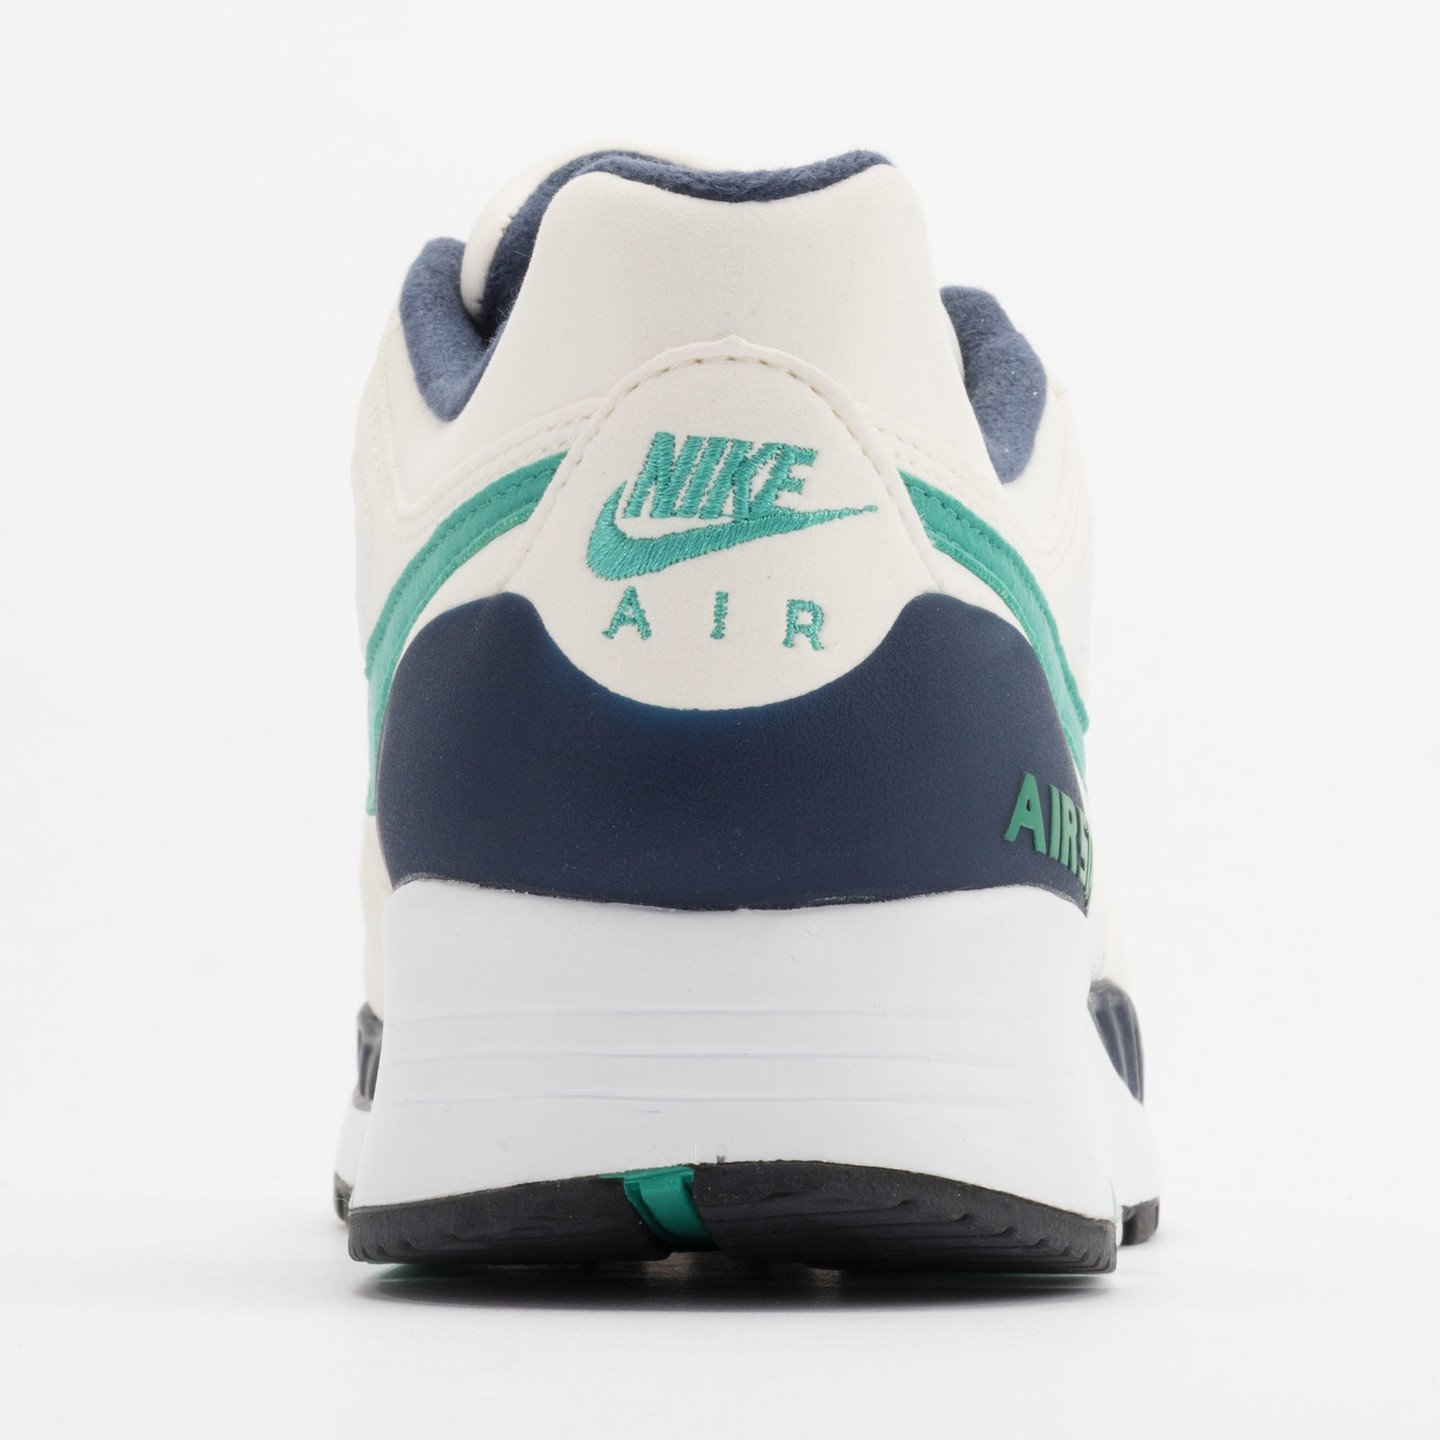 Nike Air Stab White/Emerald Green-Sl-Mid Nvy 312451-100-42